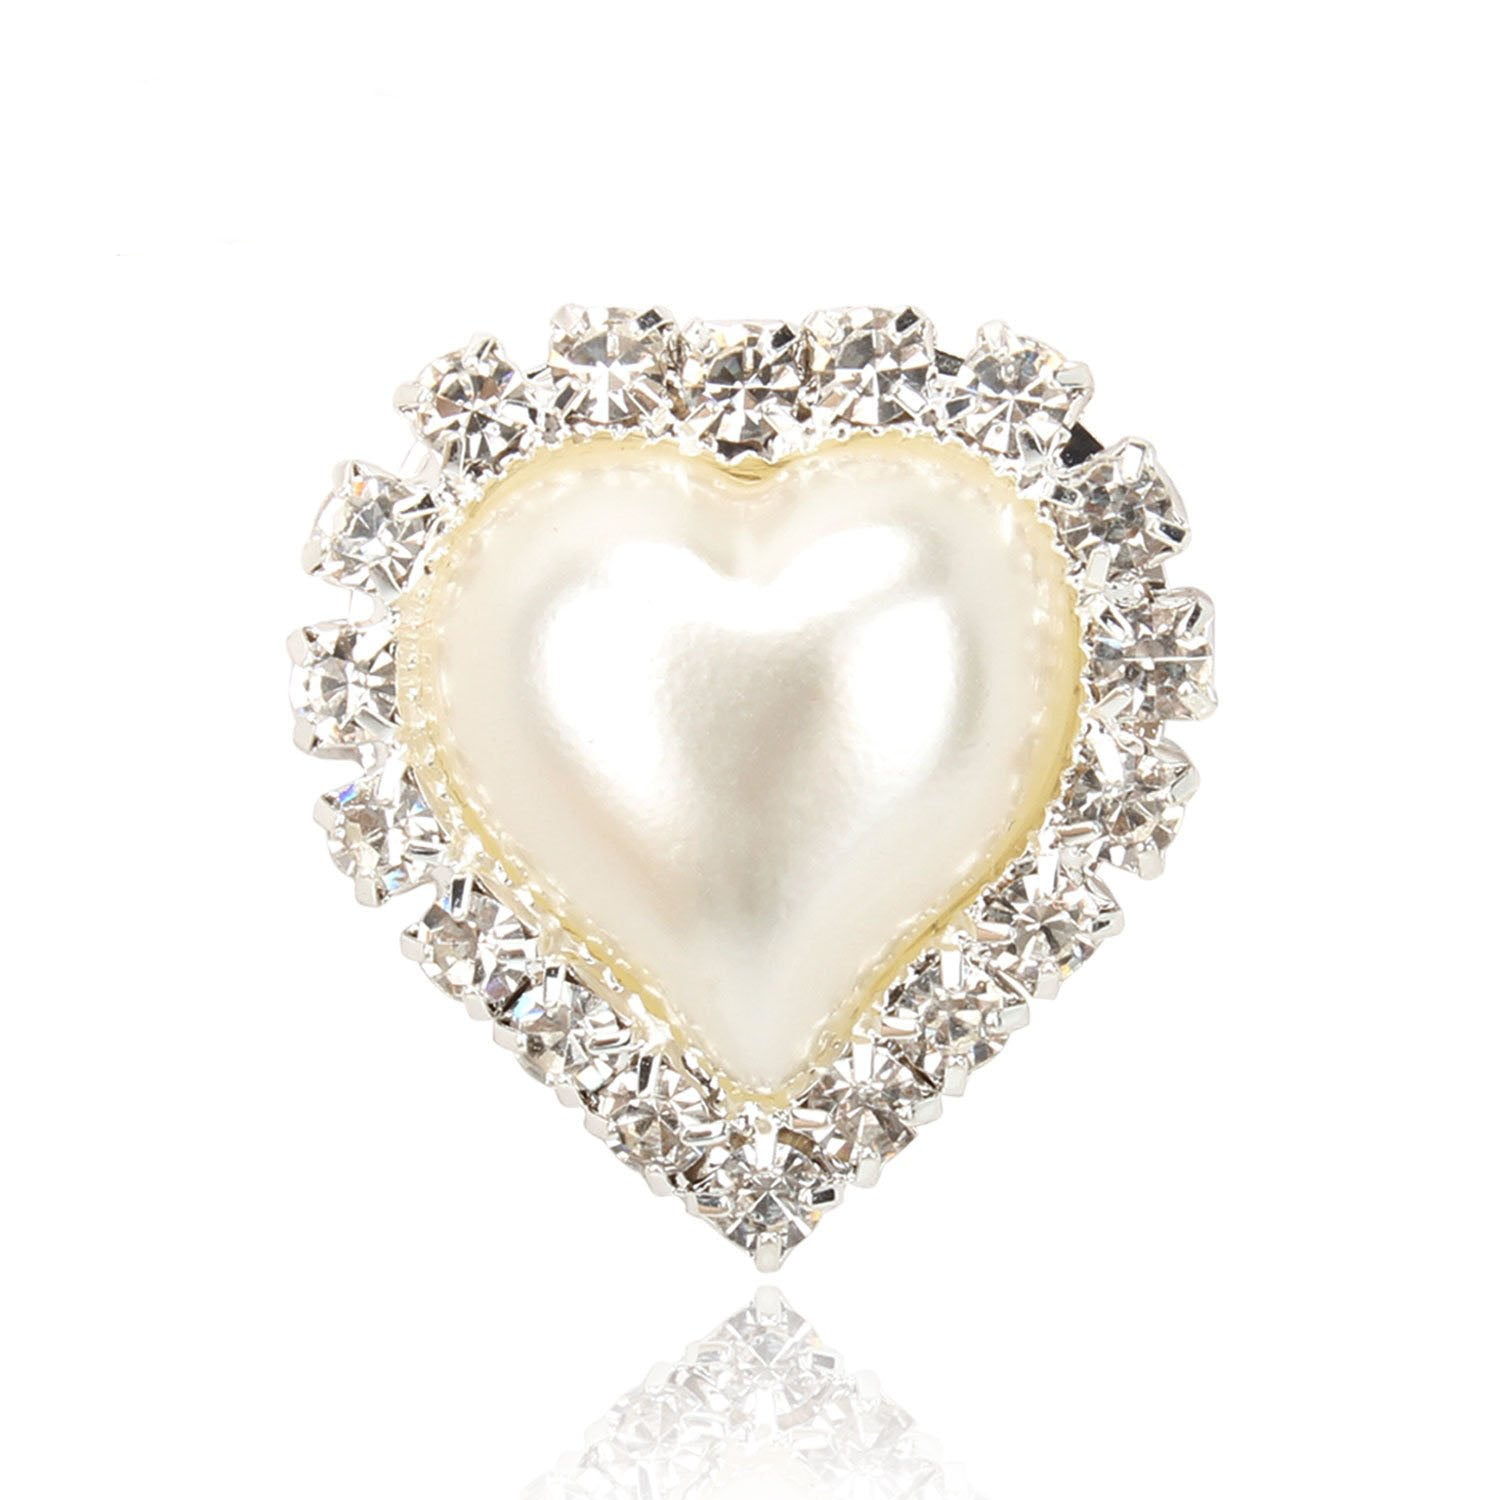 20 PCS Vintage Faux Pearl Heart Embellishments Button Bulk Flatback 21mm x 23mm